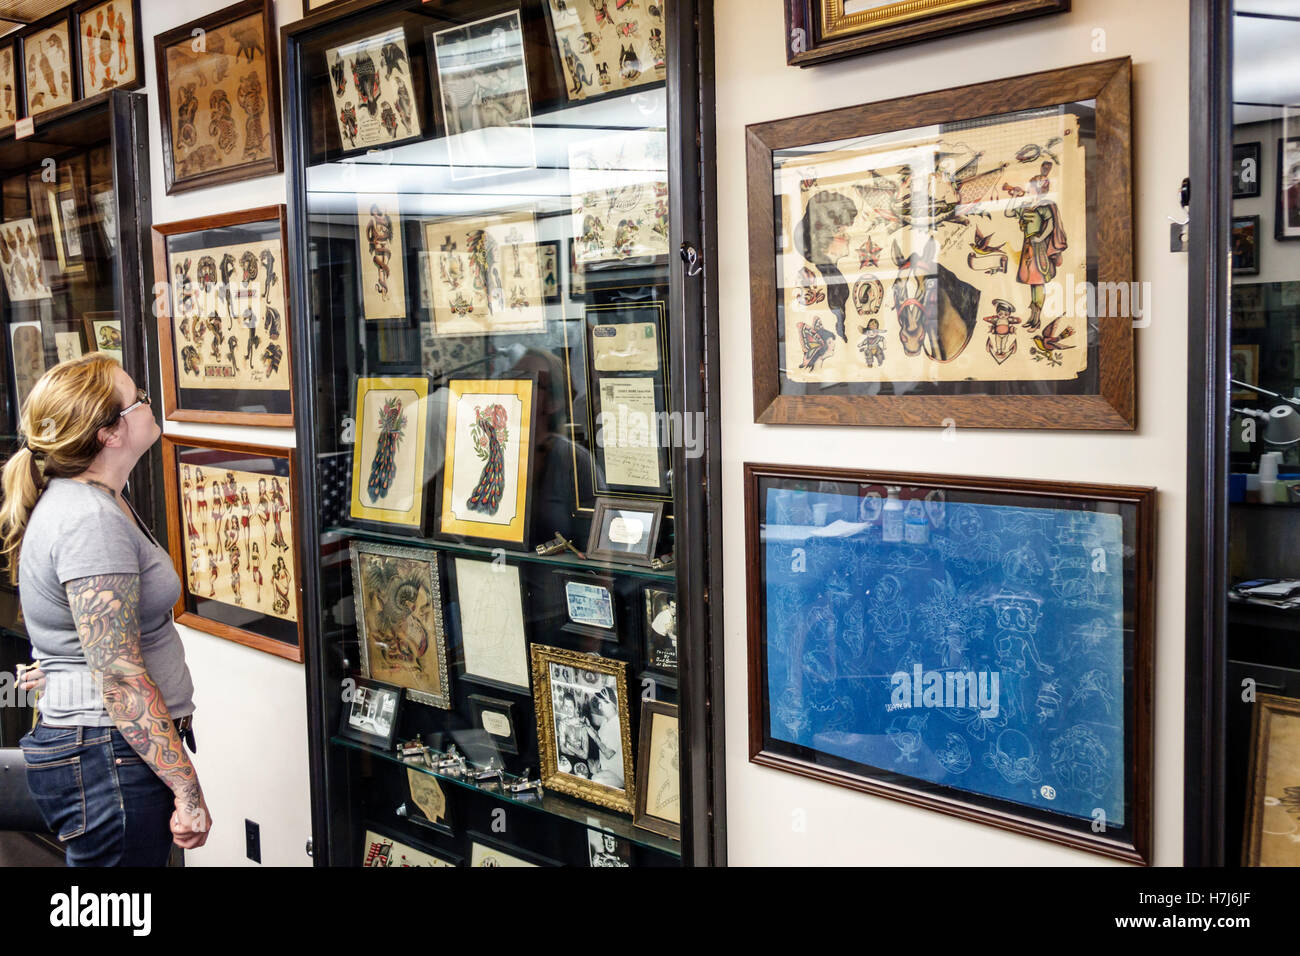 Manhattan New York City NYC NY Chinatown Daredevil Tattoo Shop Museum of Tattoo History artifacts antique tattoo - Stock Image